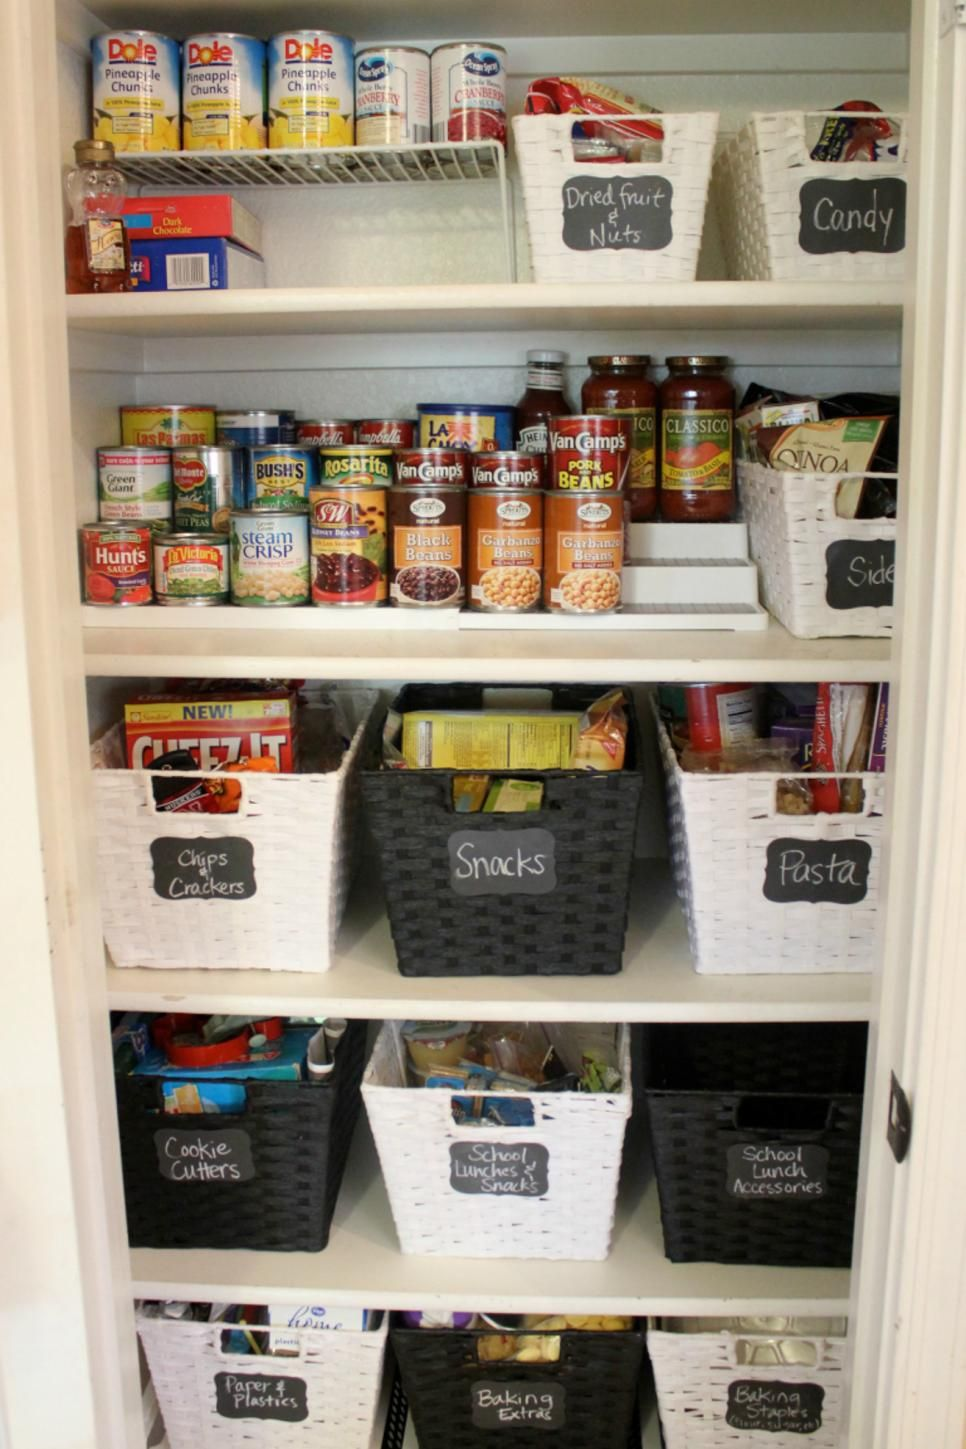 pantry community summer pantries pantrys article living donations image food seek